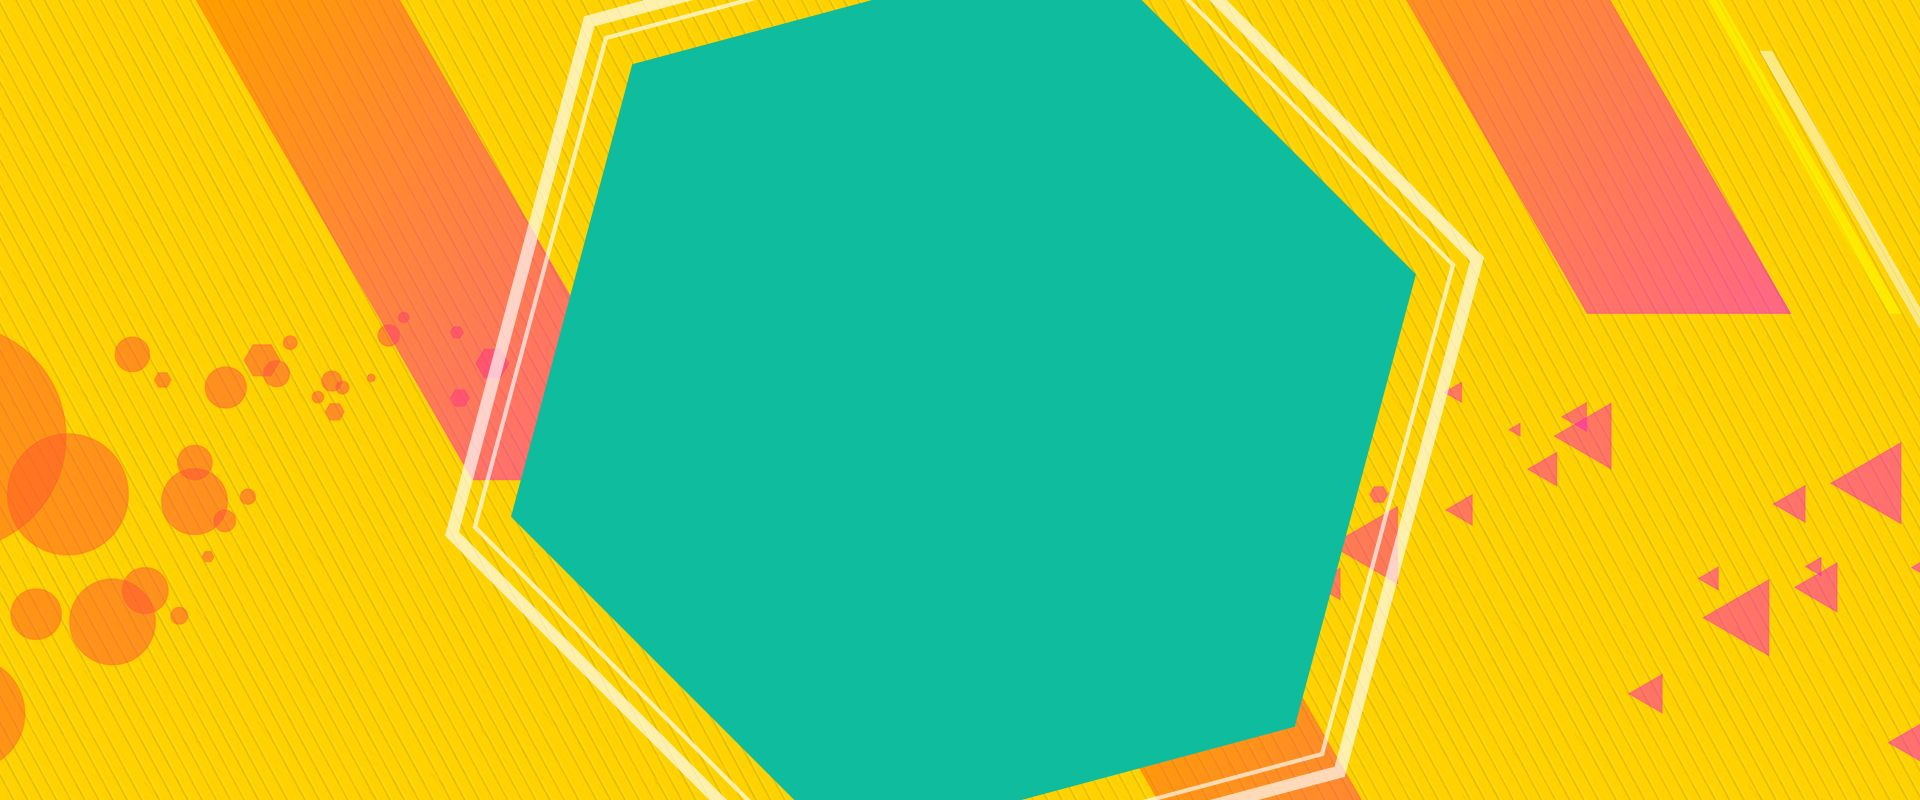 Double Twelve Promotional Geometric Gradient Yellow Background Taobao Party Design Poster Geometric Background Yellow Background